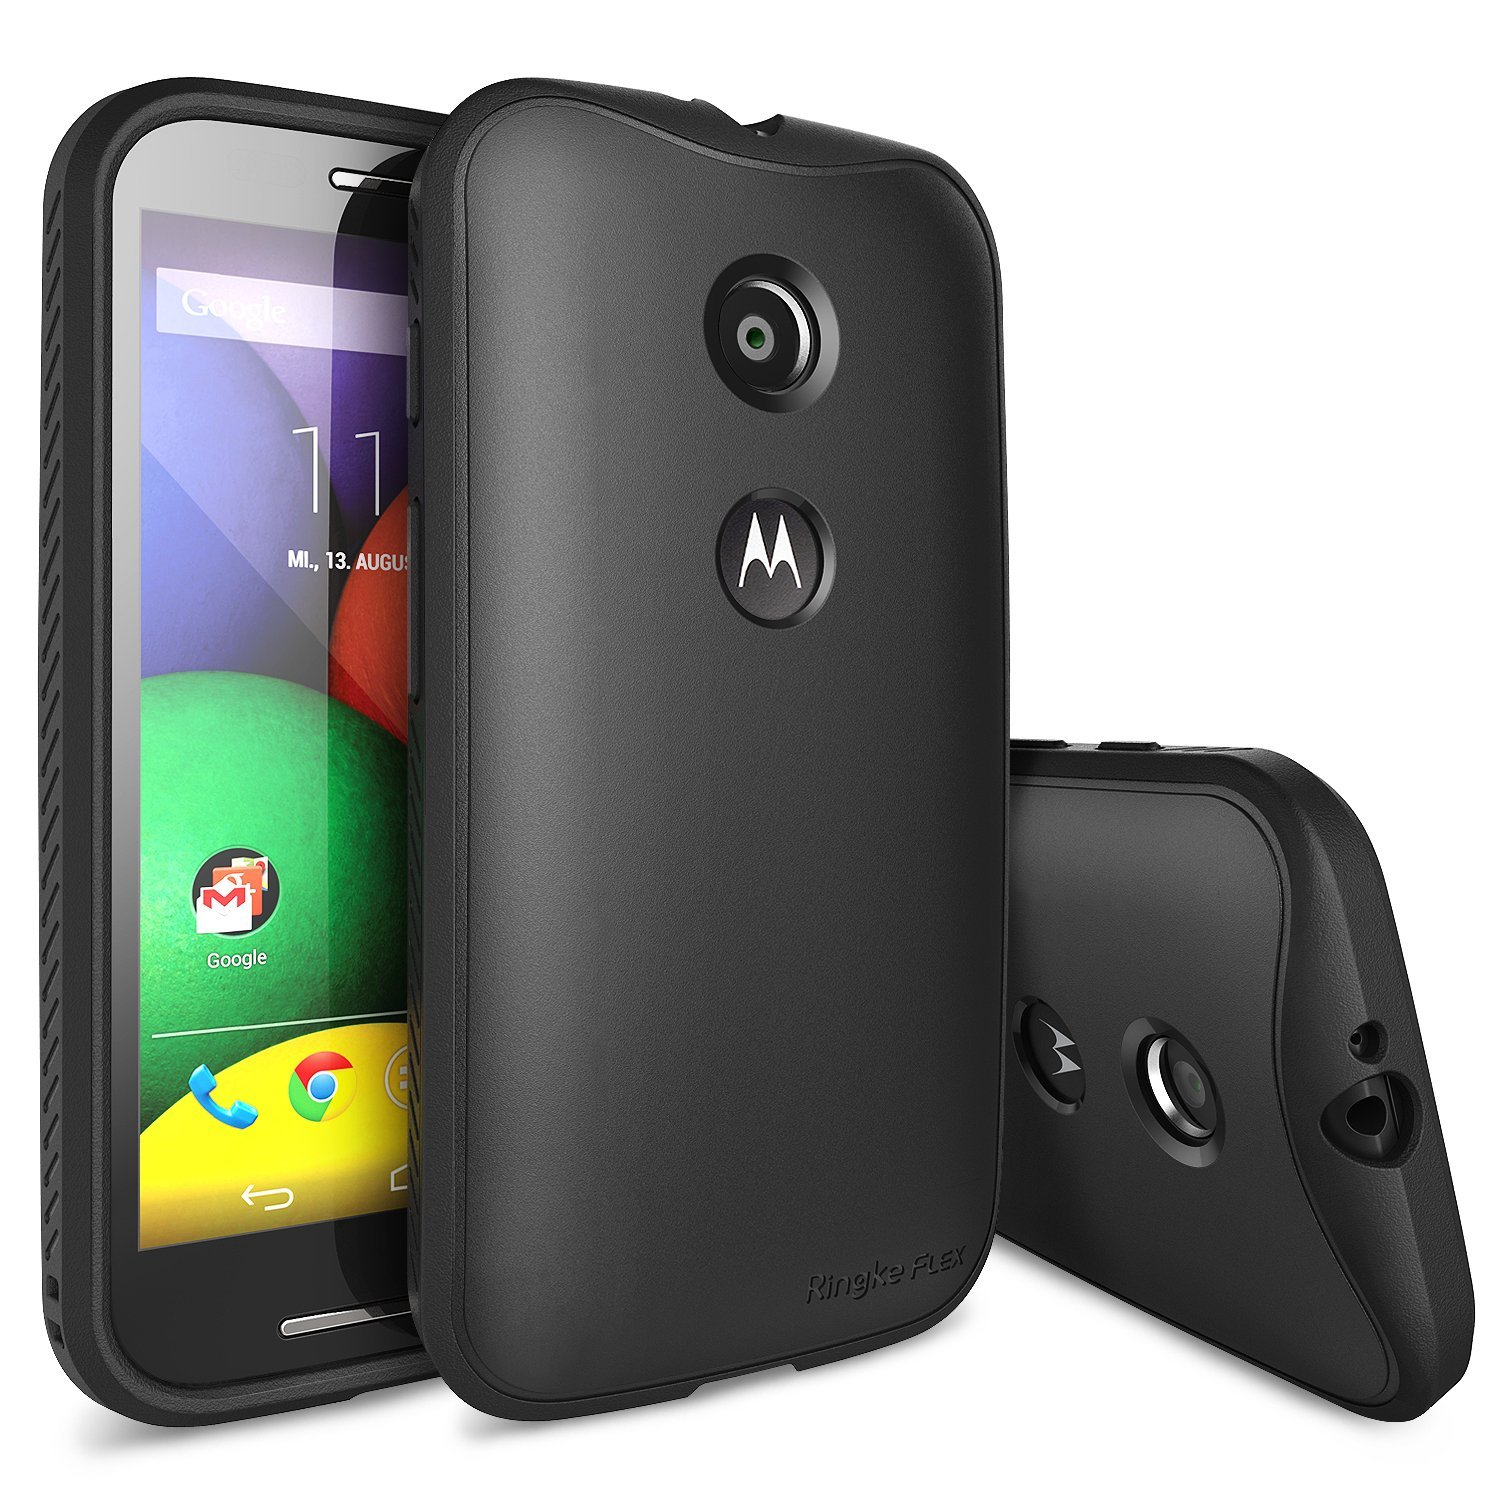 Black Motorola Moto E Ringke Flex Series Premium Flexible Tpu Strong N Soft Case W/ Free Screen Protector - Conforms To Your Phone!